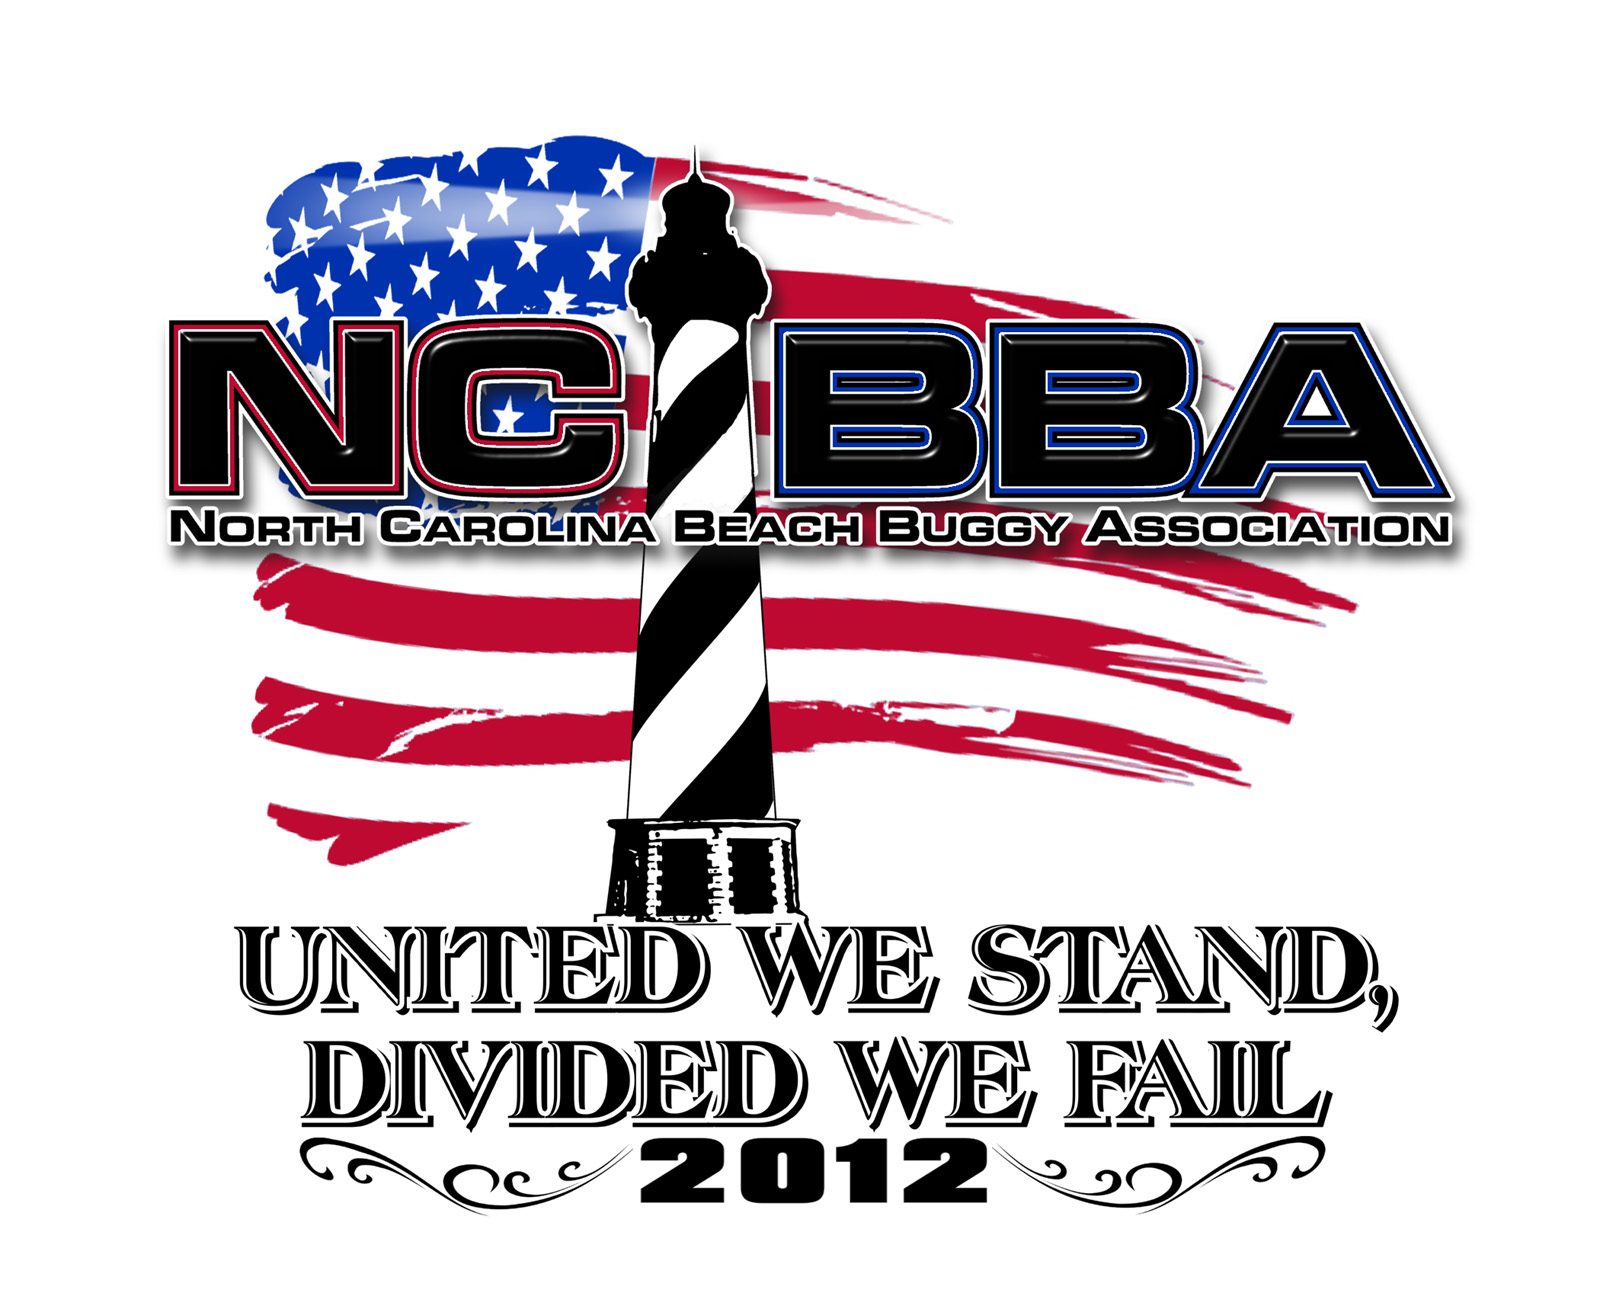 4-26-12 ncbba 2012 shirt design  final